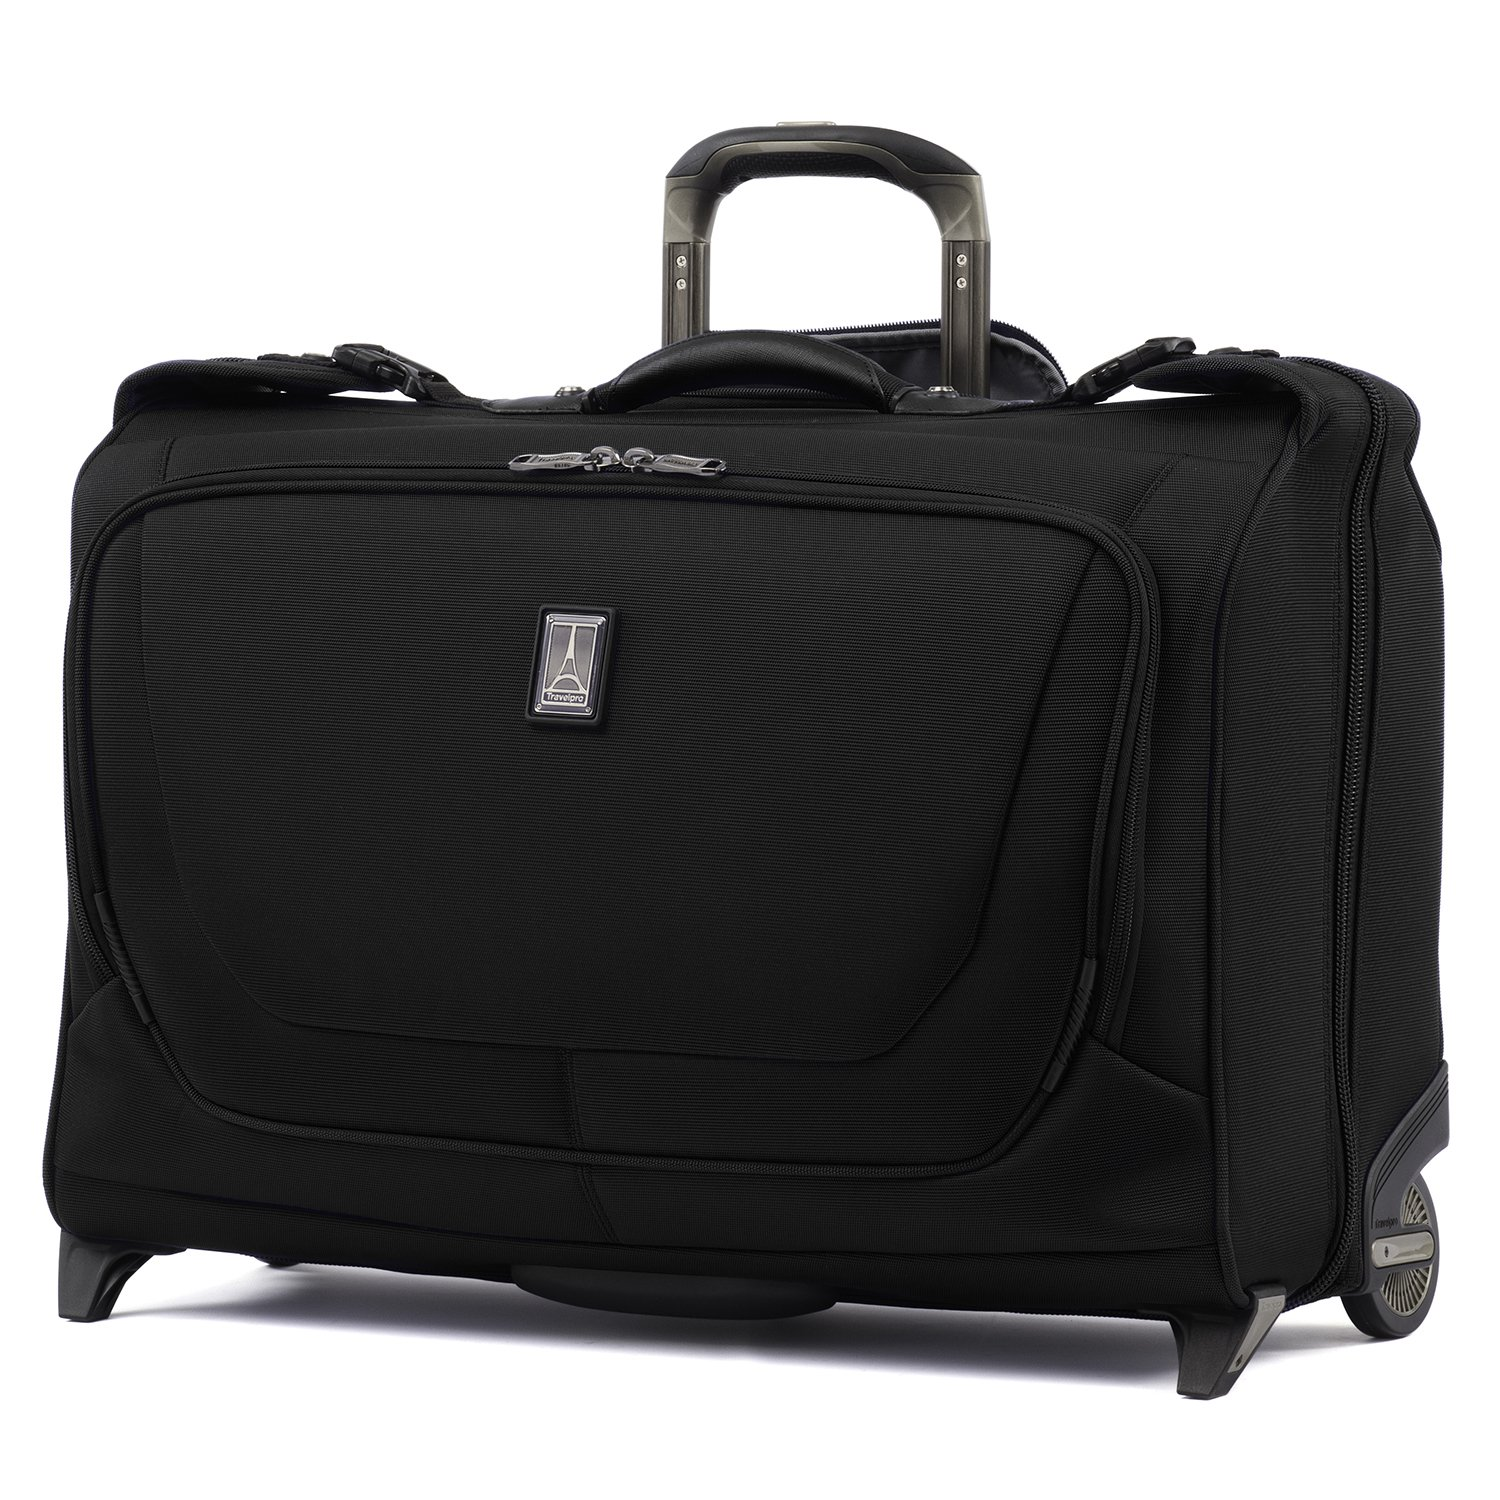 Travelpro Luggage Crew 11 22'' Carry-on Rolling Garment Bag, Suitcase, Black by Travelpro